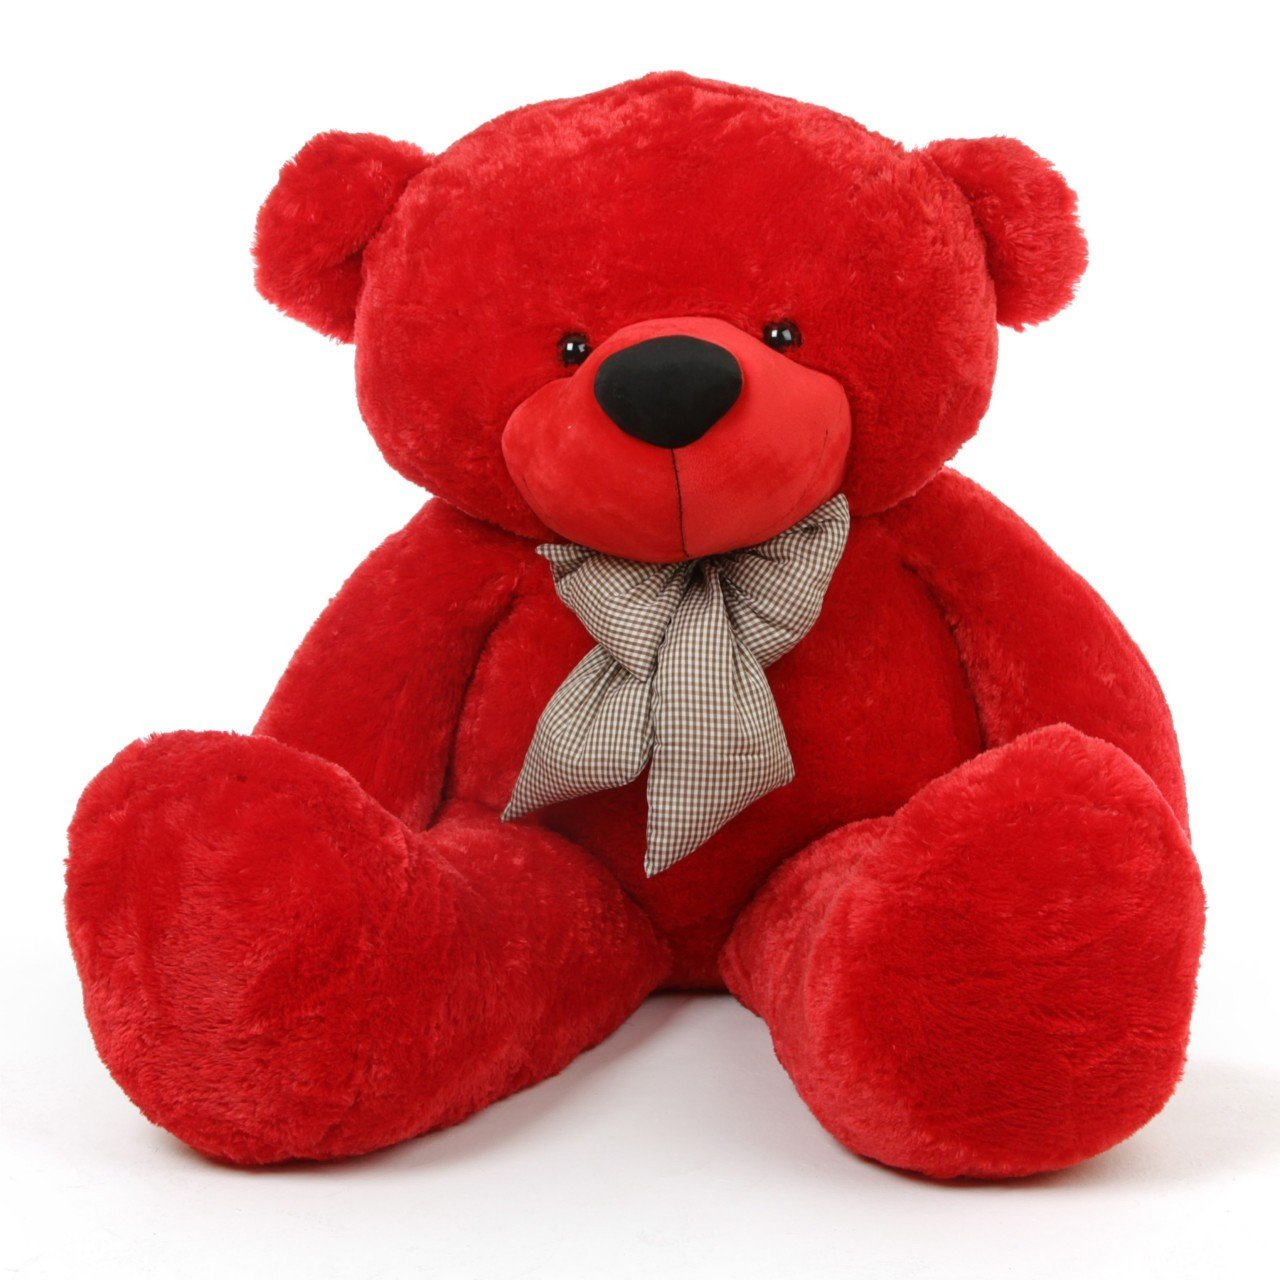 Red Teddy Bear 5 Feet, Buy 5 Feet Red Teddy Bear With A Bow Online At Low Prices In India Amazon In